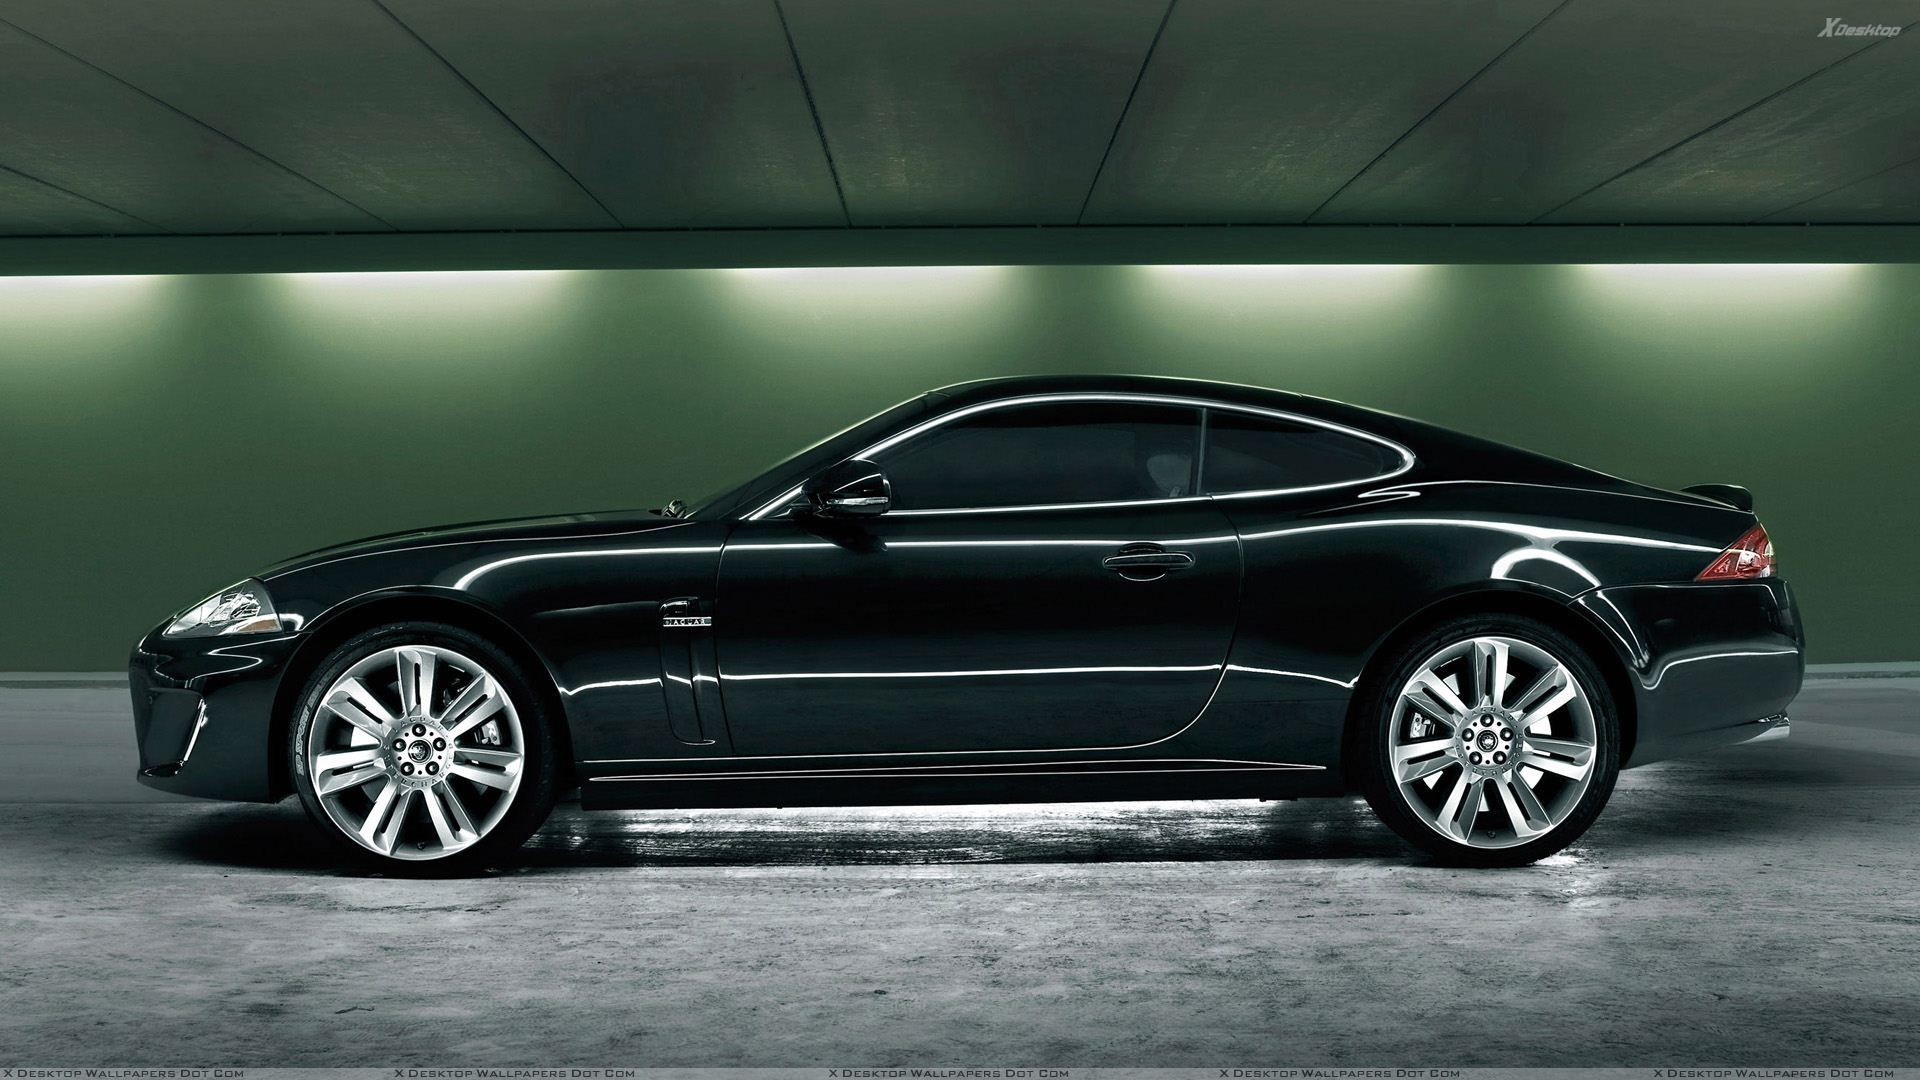 Jaguar xkr this will be my next car love the jag